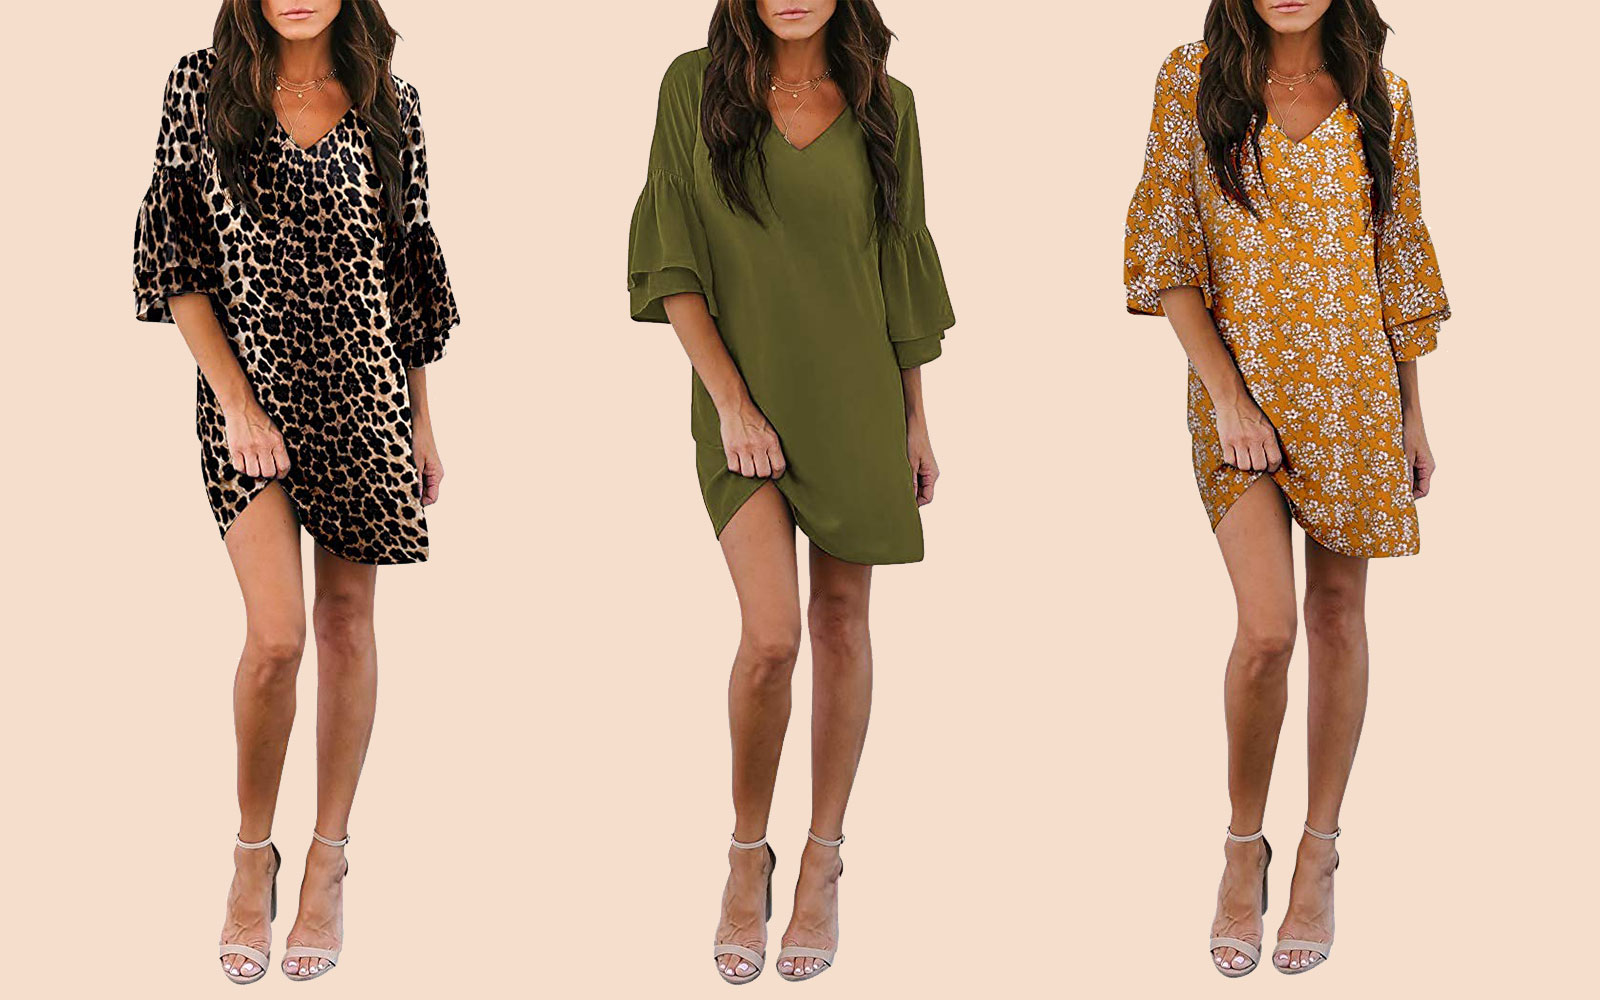 Amazon Shoppers Are Obsessed With This Ultra-flattering Mini Dress — and It's Only $23